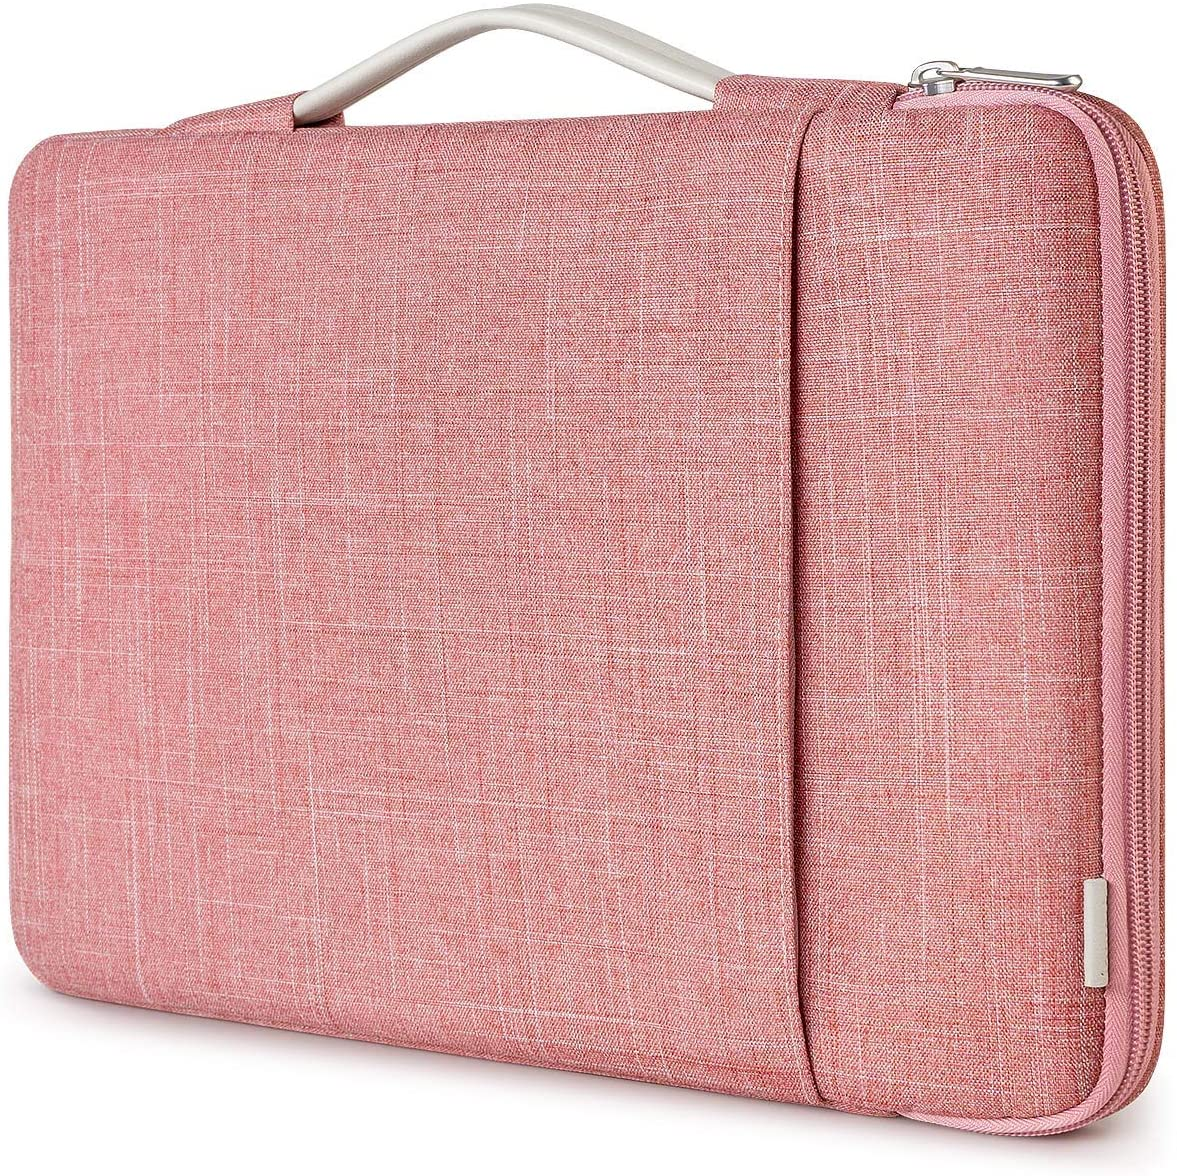 Inateck 13 Zoll Laptoptasche Hülle Kompatibel MacBook Air/Pro, Surface Pro LB02006, rot